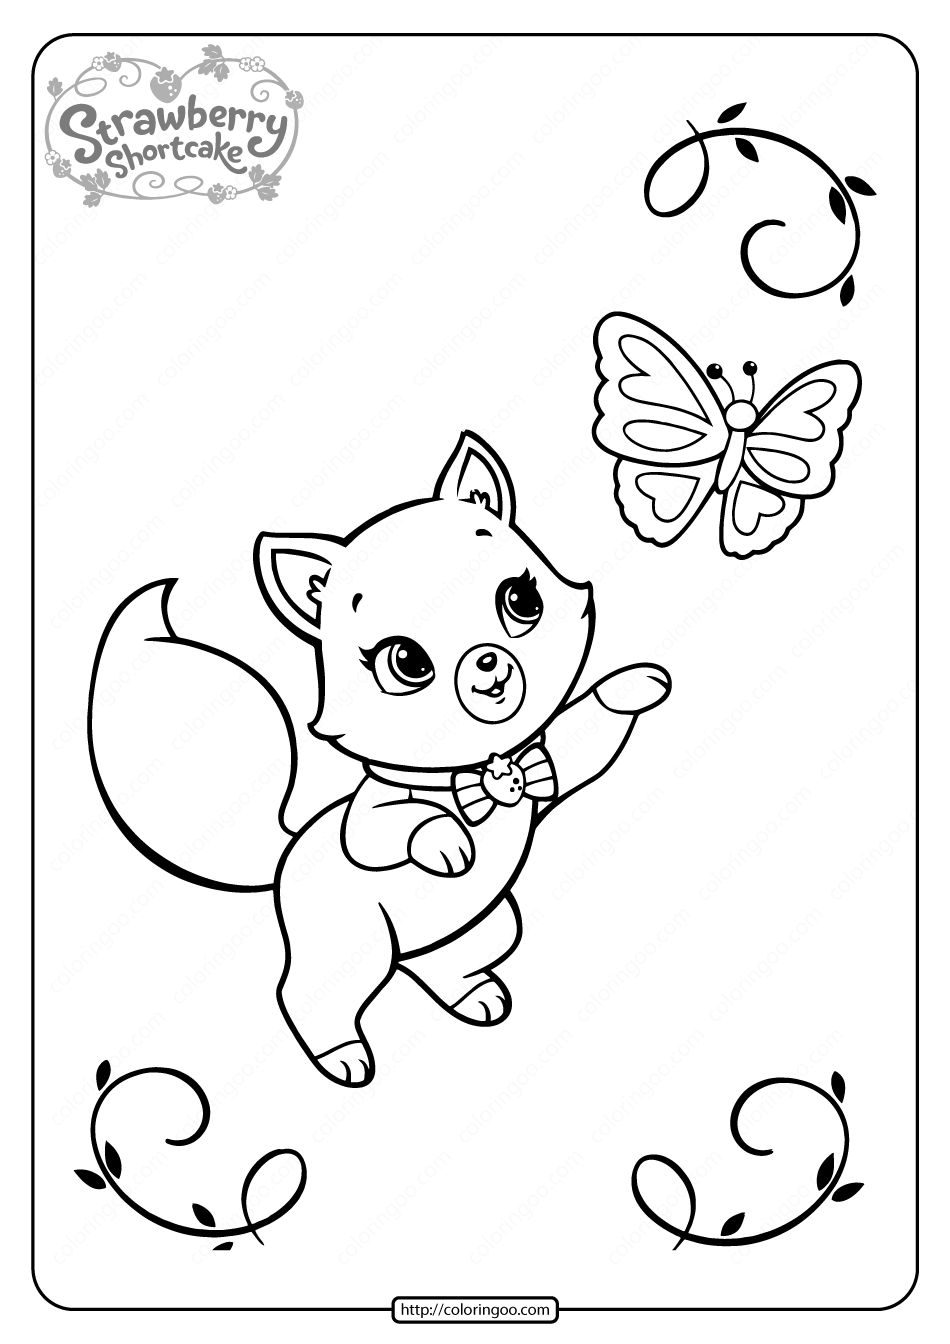 Custard Playing with a Butterfly Coloring Page